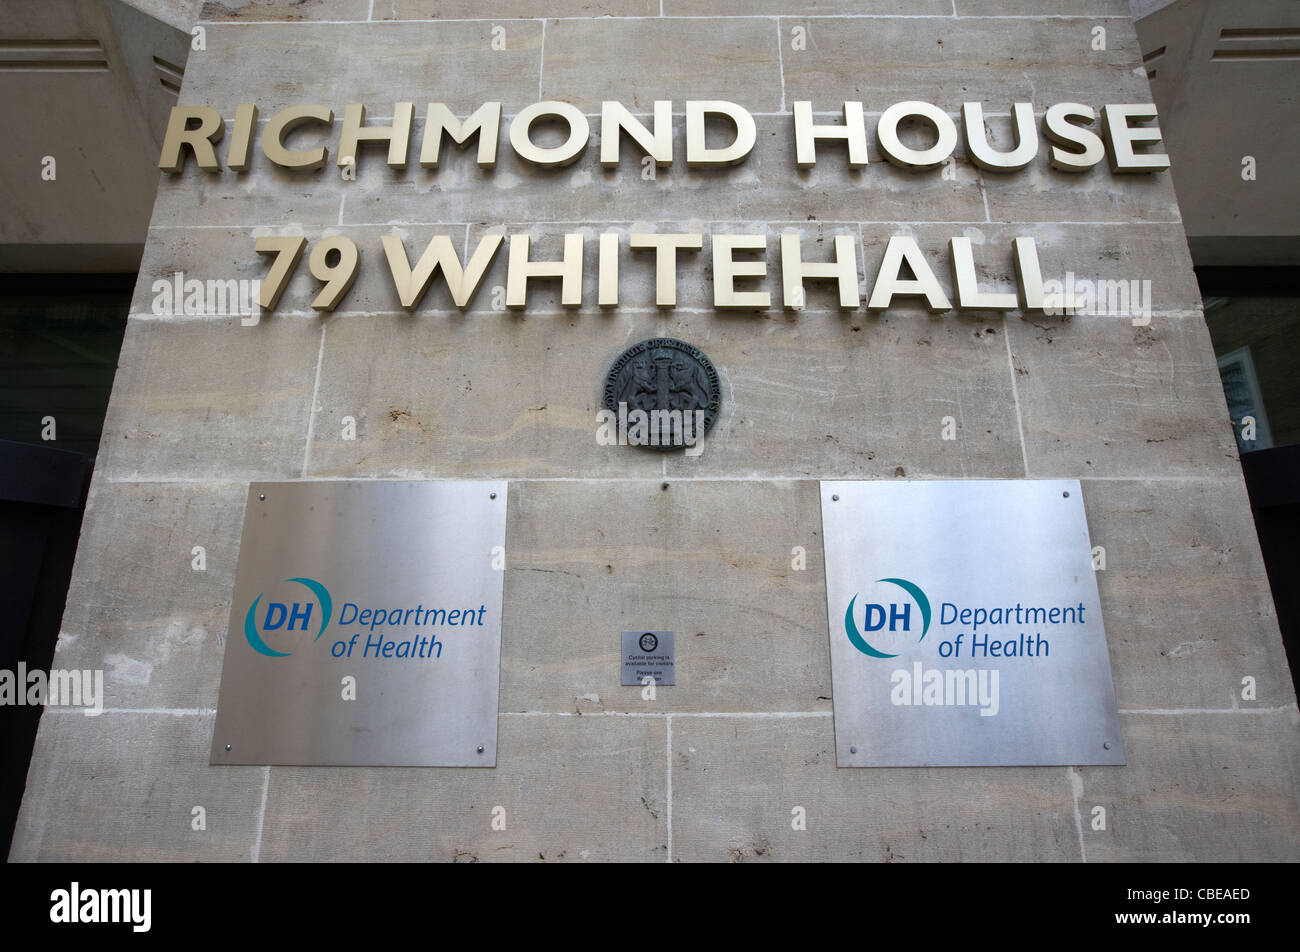 richmond house department of health british government official building whitehall london england united kingdom - Stock Image